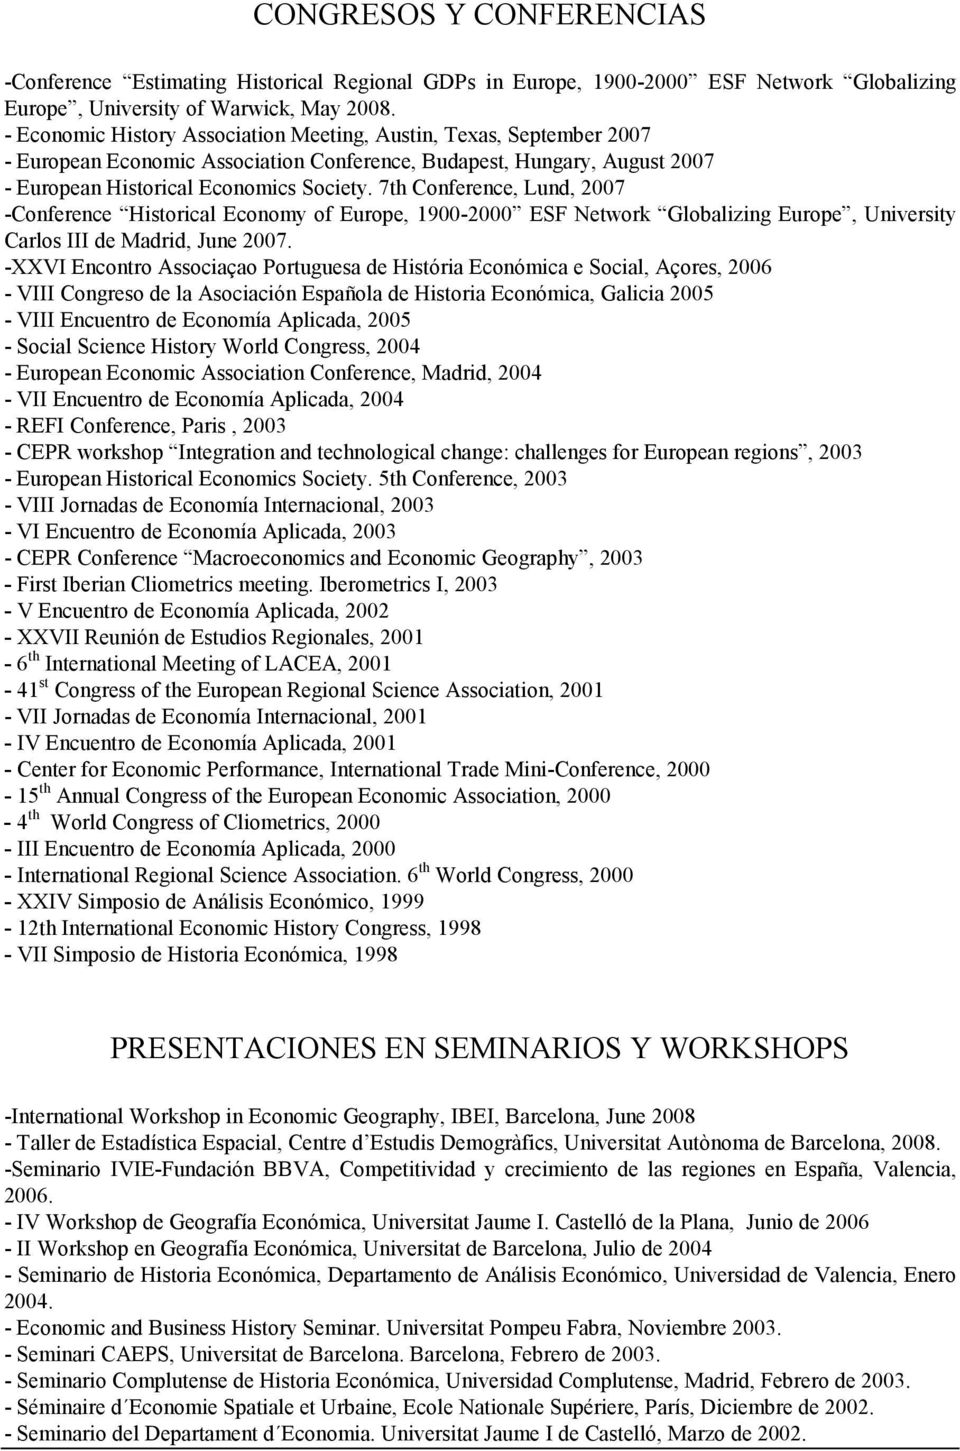 7th Conference, Lund, 2007 -Conference Historical Economy of Europe, 1900-2000 ESF Network Globalizing Europe, University Carlos III de Madrid, June 2007.